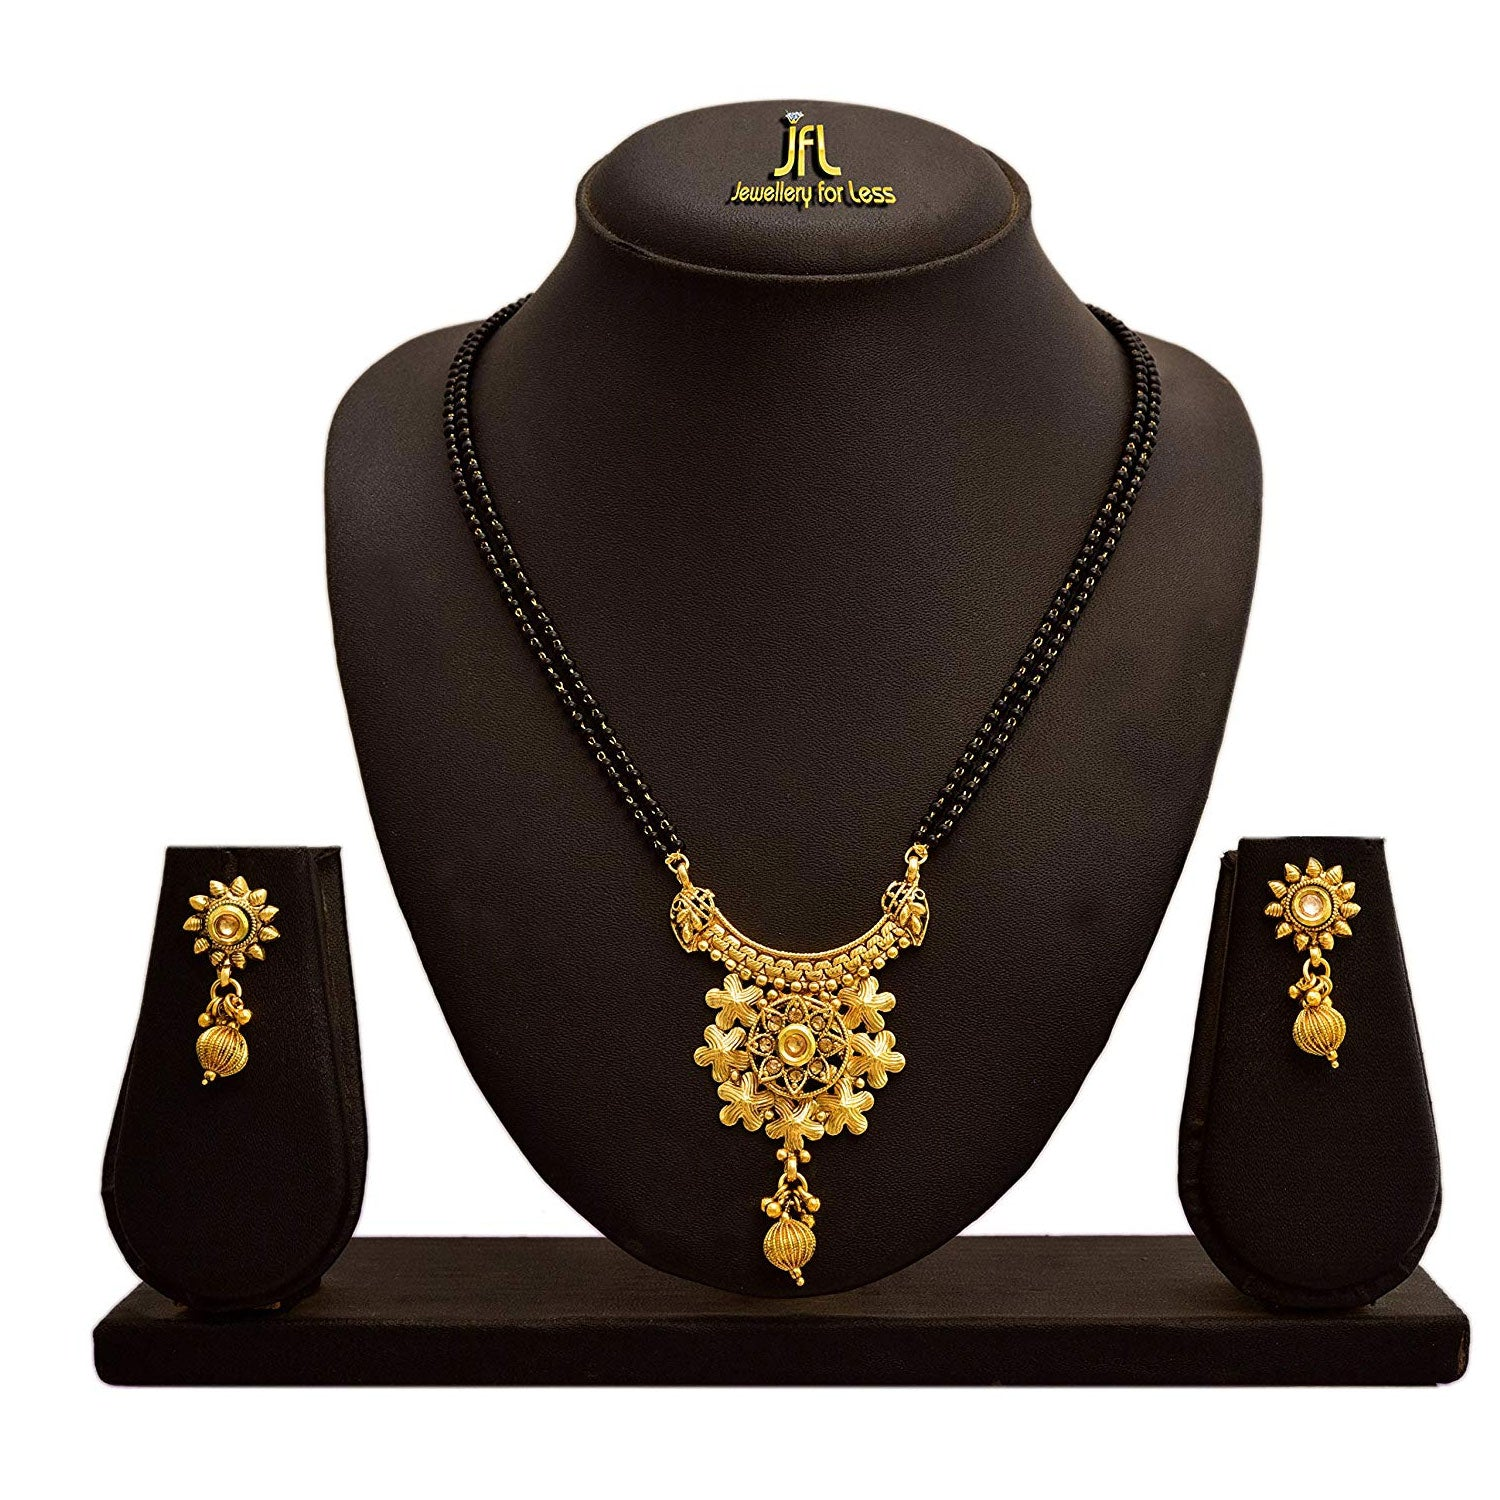 JFL - Jewellery for Less One Gram Gold Plated Kundan Designer Mangalsutra Set With Black Beaded Chain For Women